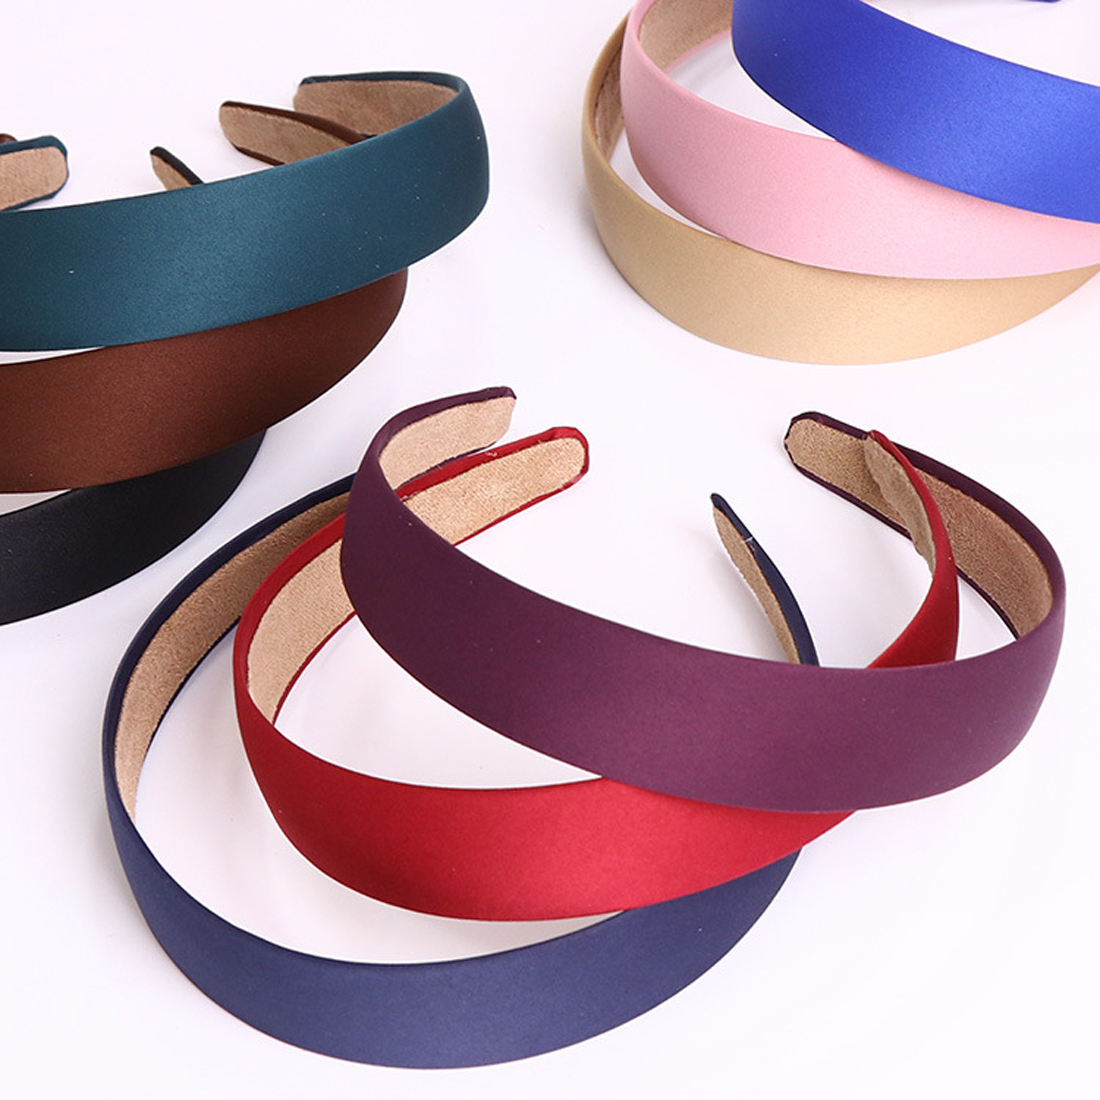 Vintage Women DIY Wide Headband Girls Elegant Hair Hoops Headwear Ponytail Hair Band Headpiece Hair Bows Girls Hair Accessories